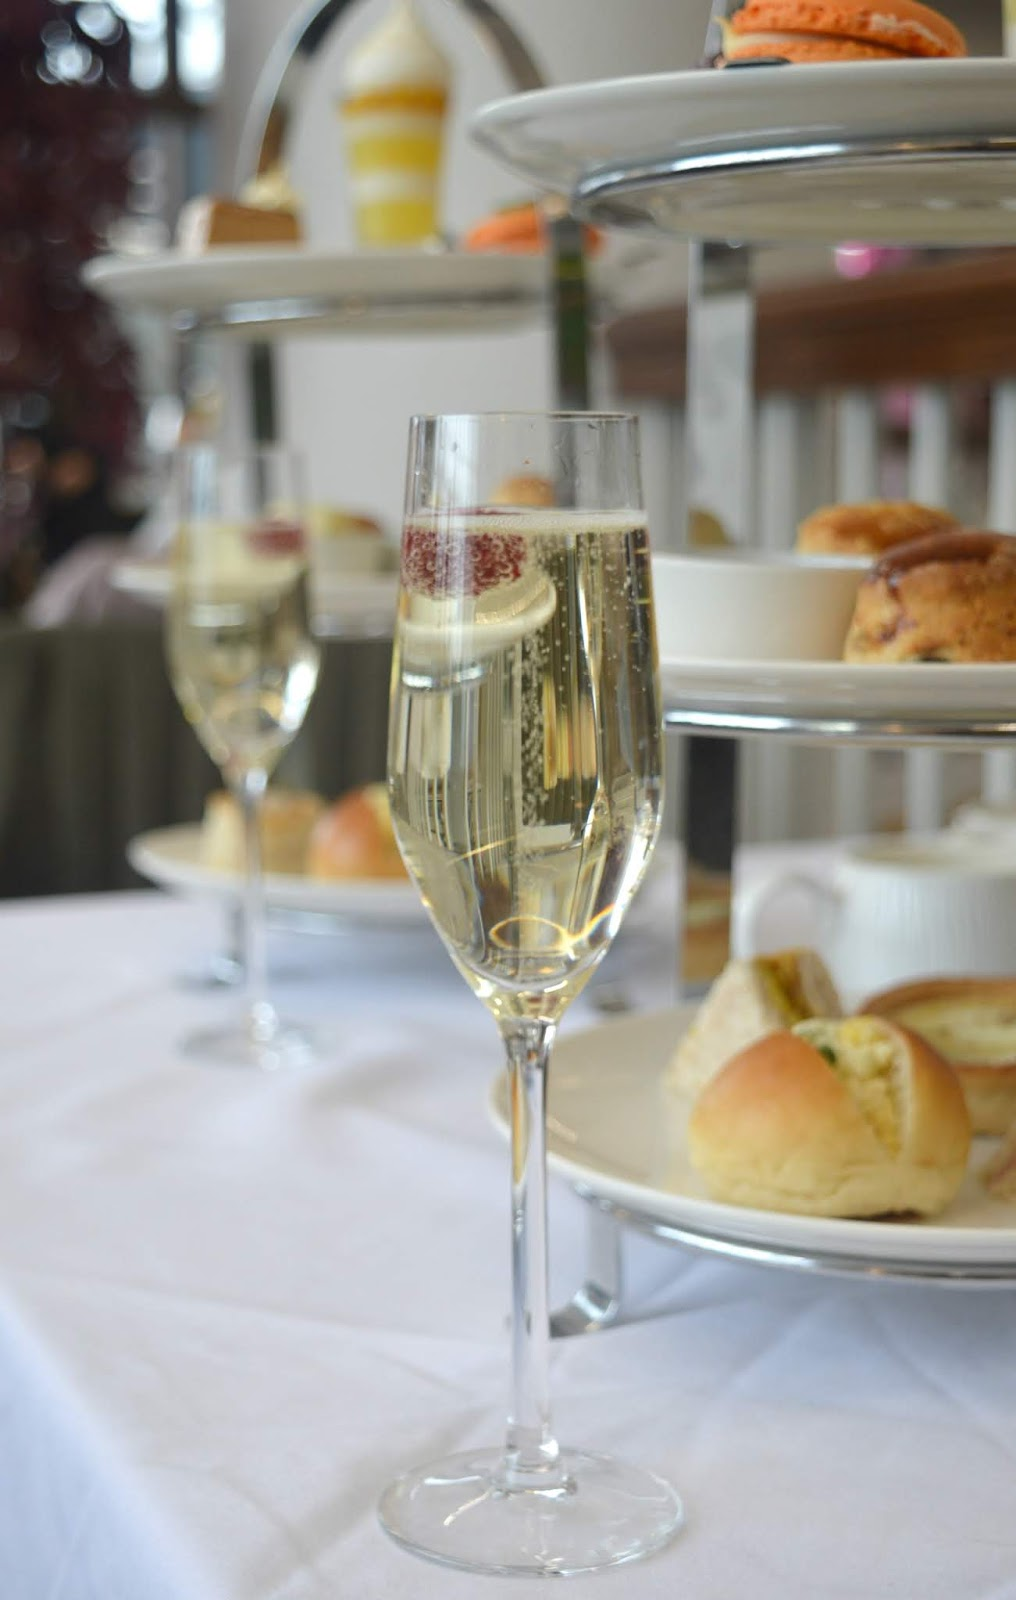 Afternoon Tea Spanish City with Prosecco, Whitley Bay